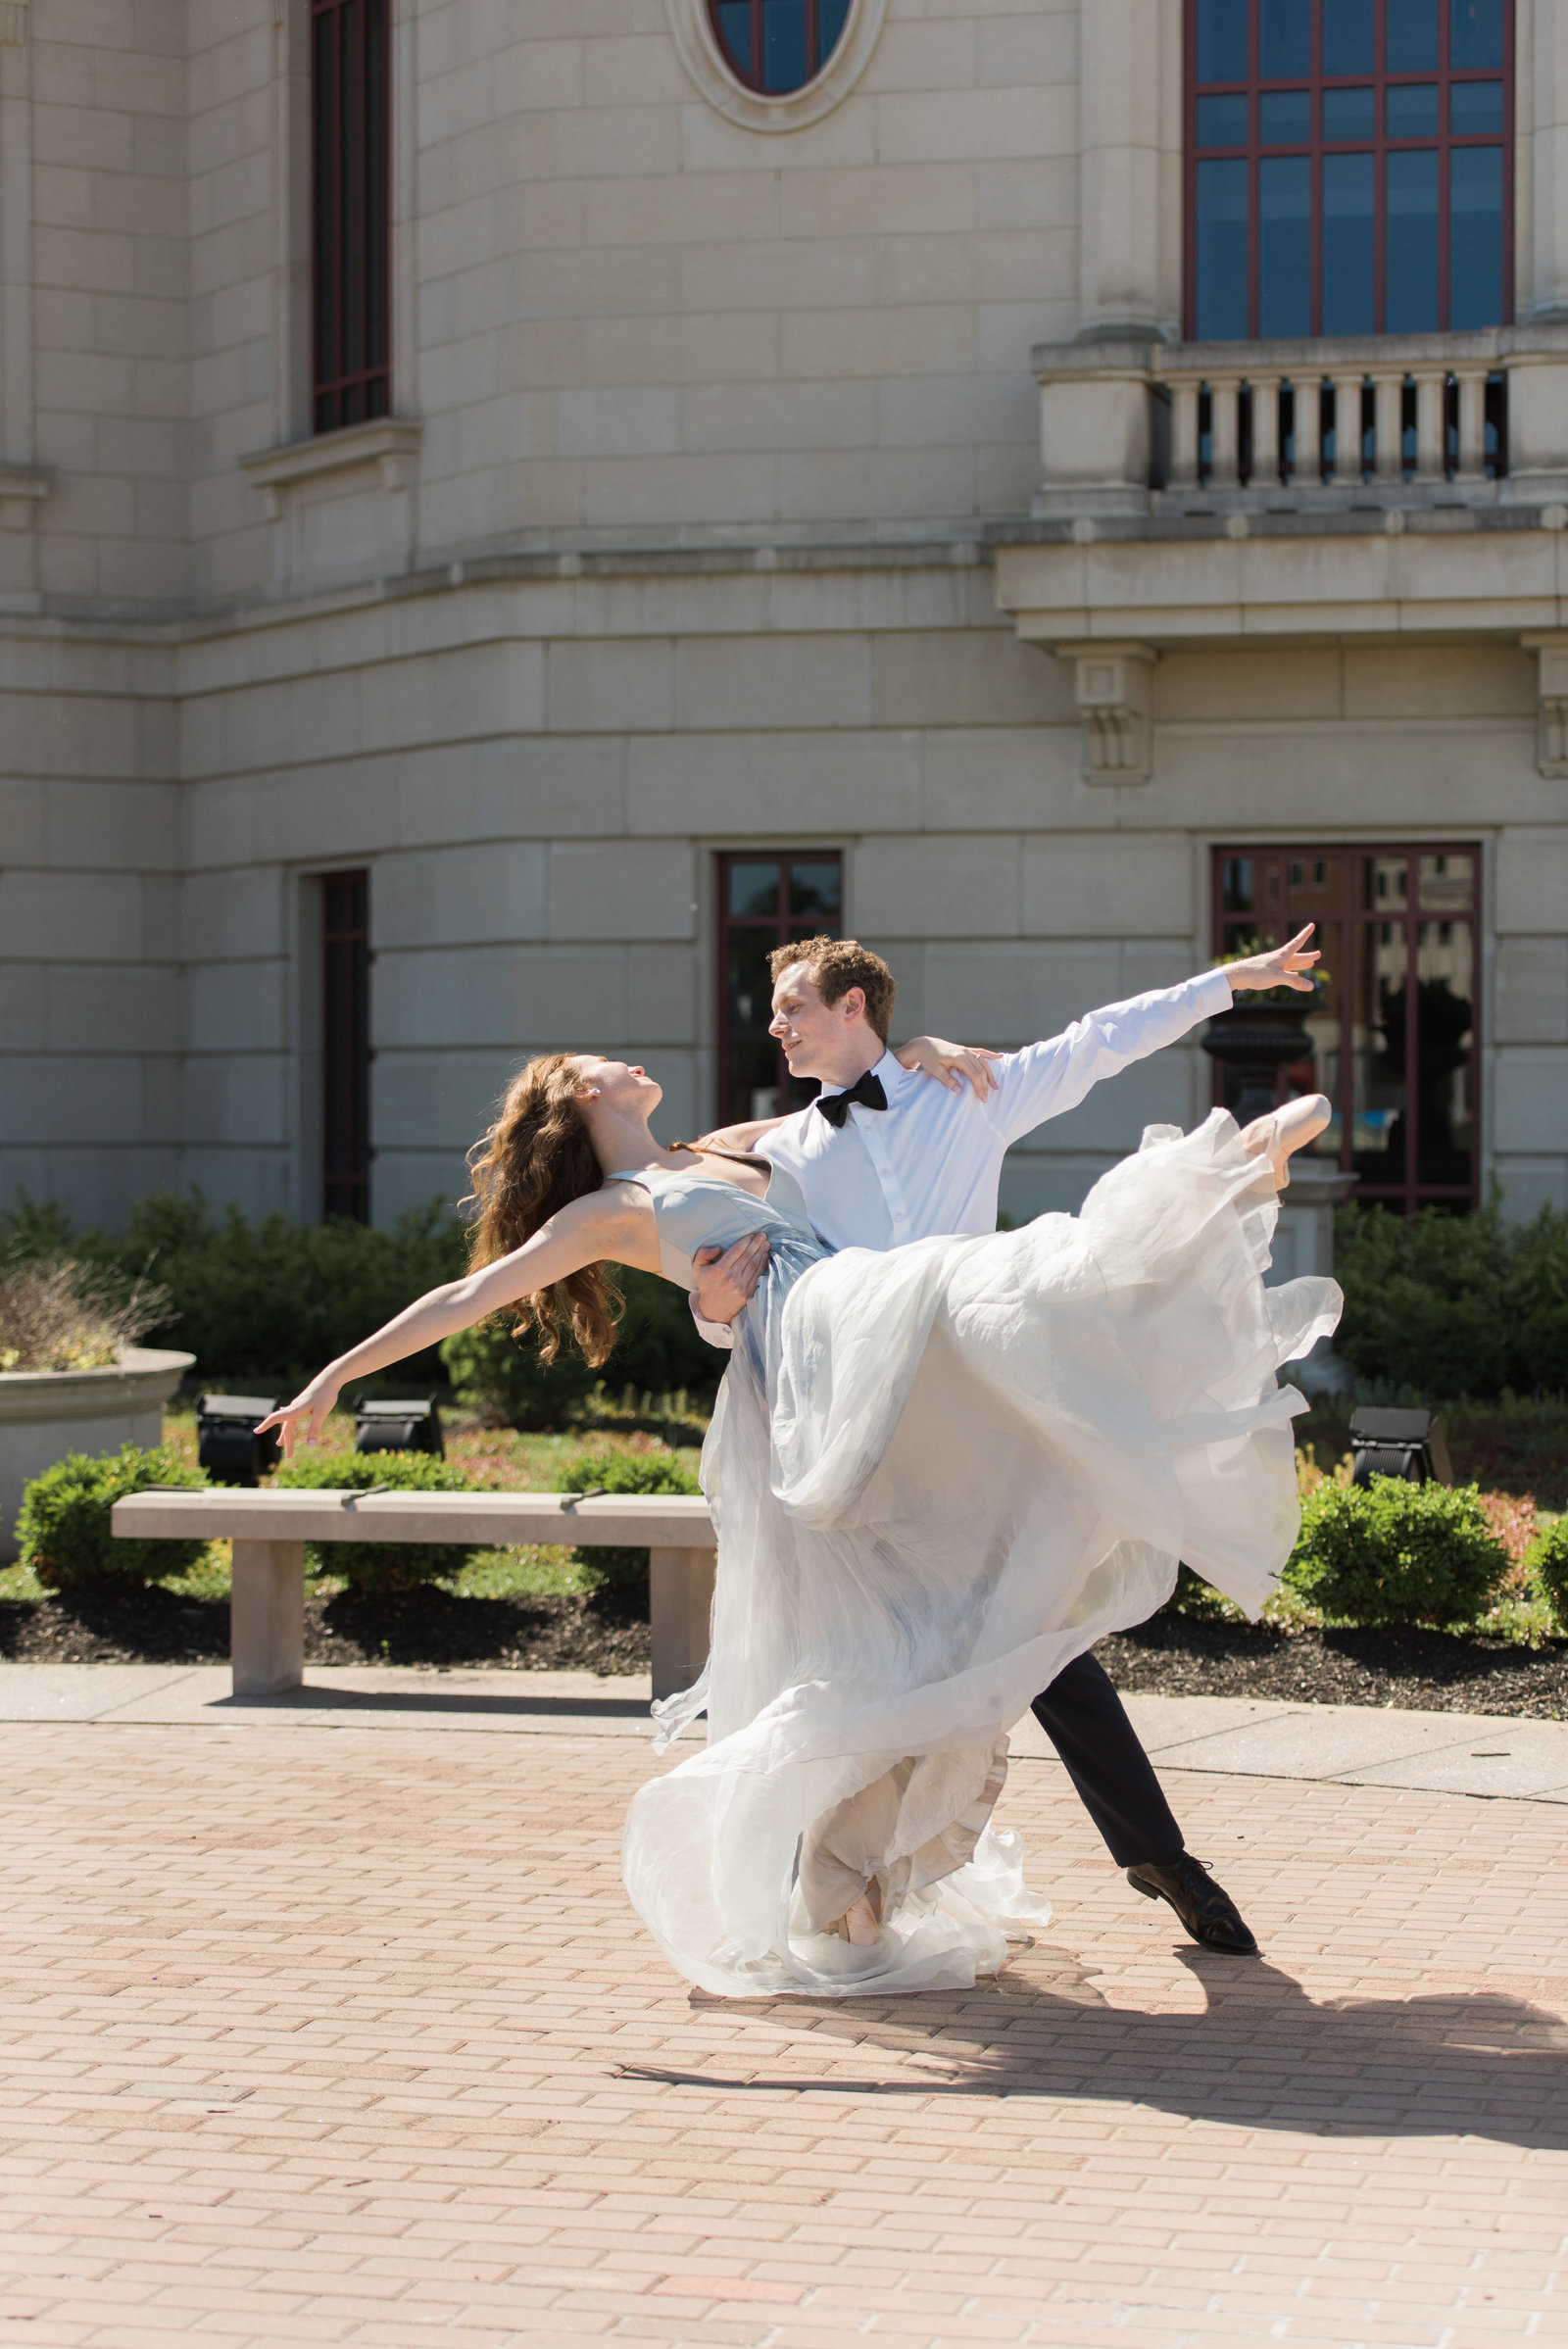 Ballet Inspired Engagement Session at the Palladium in Carmel Indiana (101 of 129)